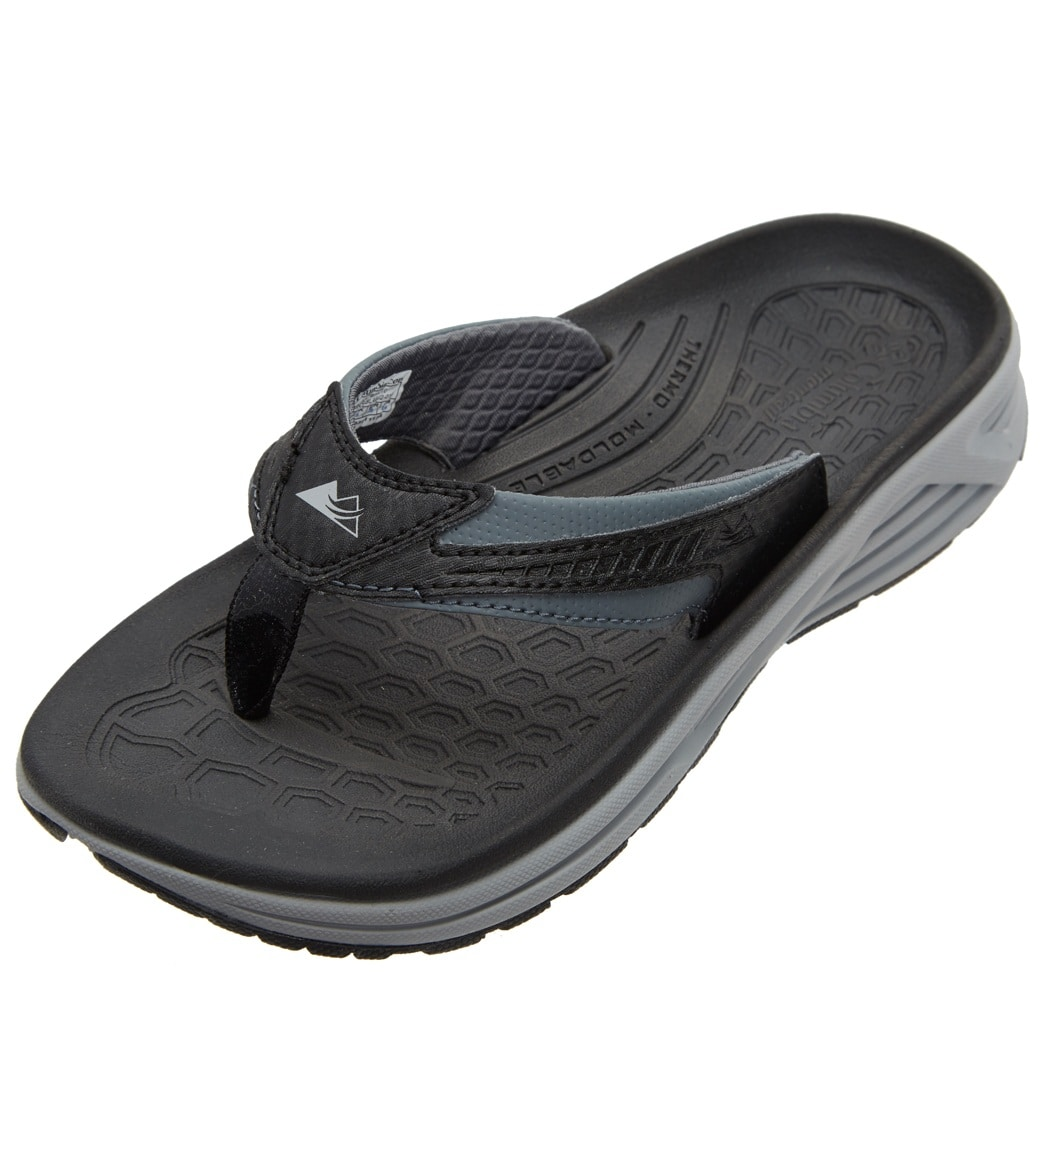 96ebb20a305 Columbia Women s Molokini III Recovery Flip Flop at SwimOutlet.com - Free  Shipping